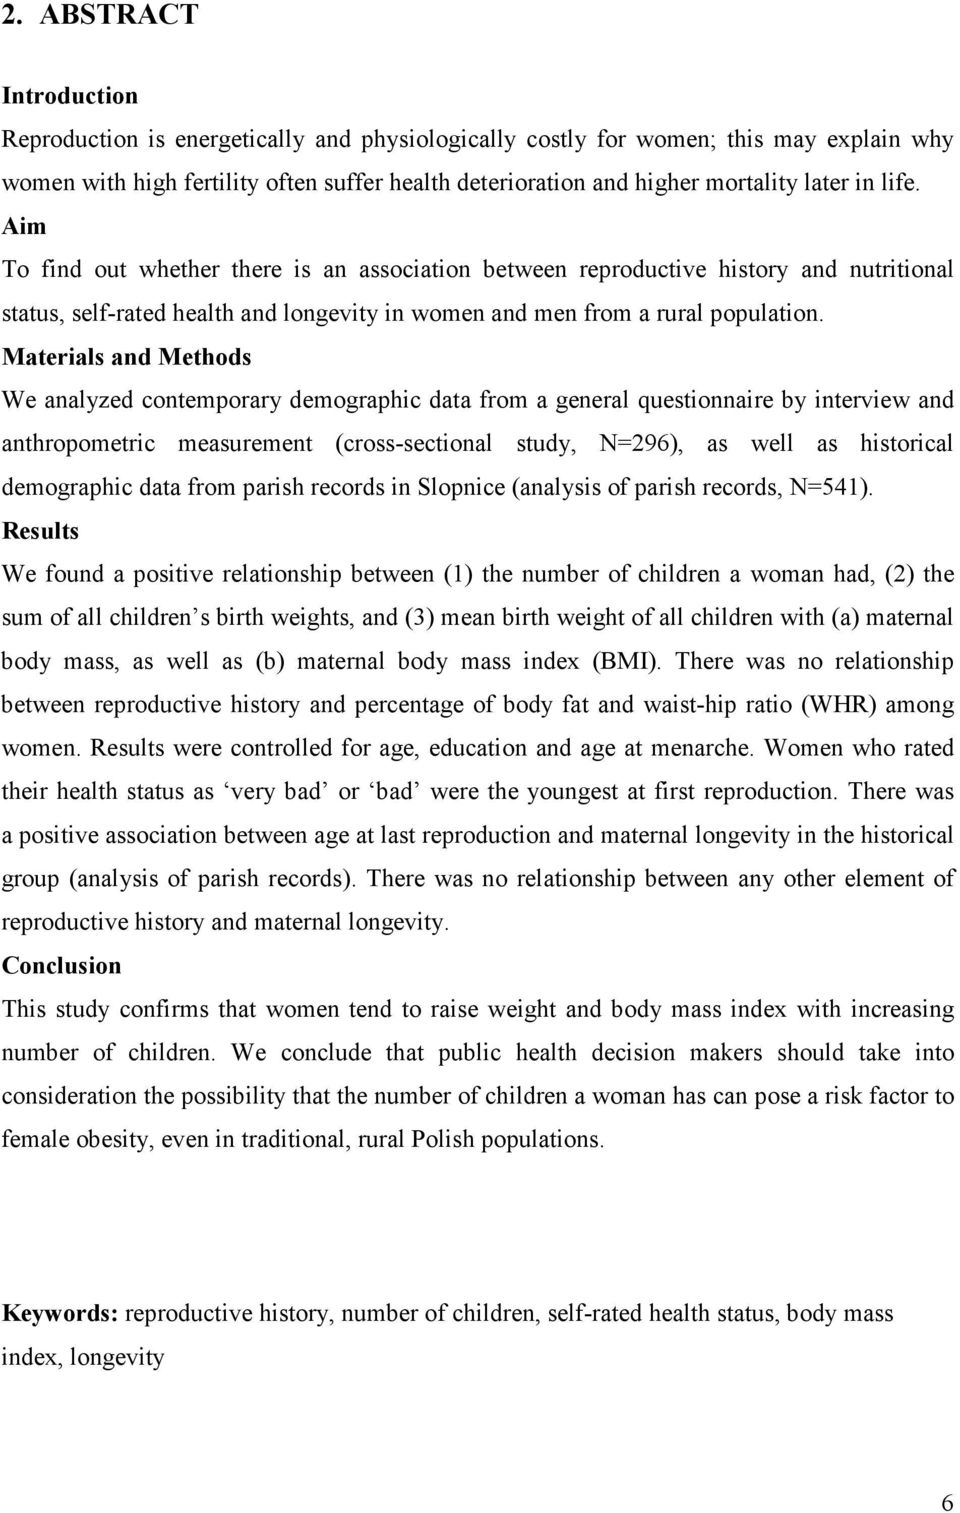 Materials and Methods We analyzed contemporary demographic data from a general questionnaire by interview and anthropometric measurement (cross-sectional study, N=296), as well as historical